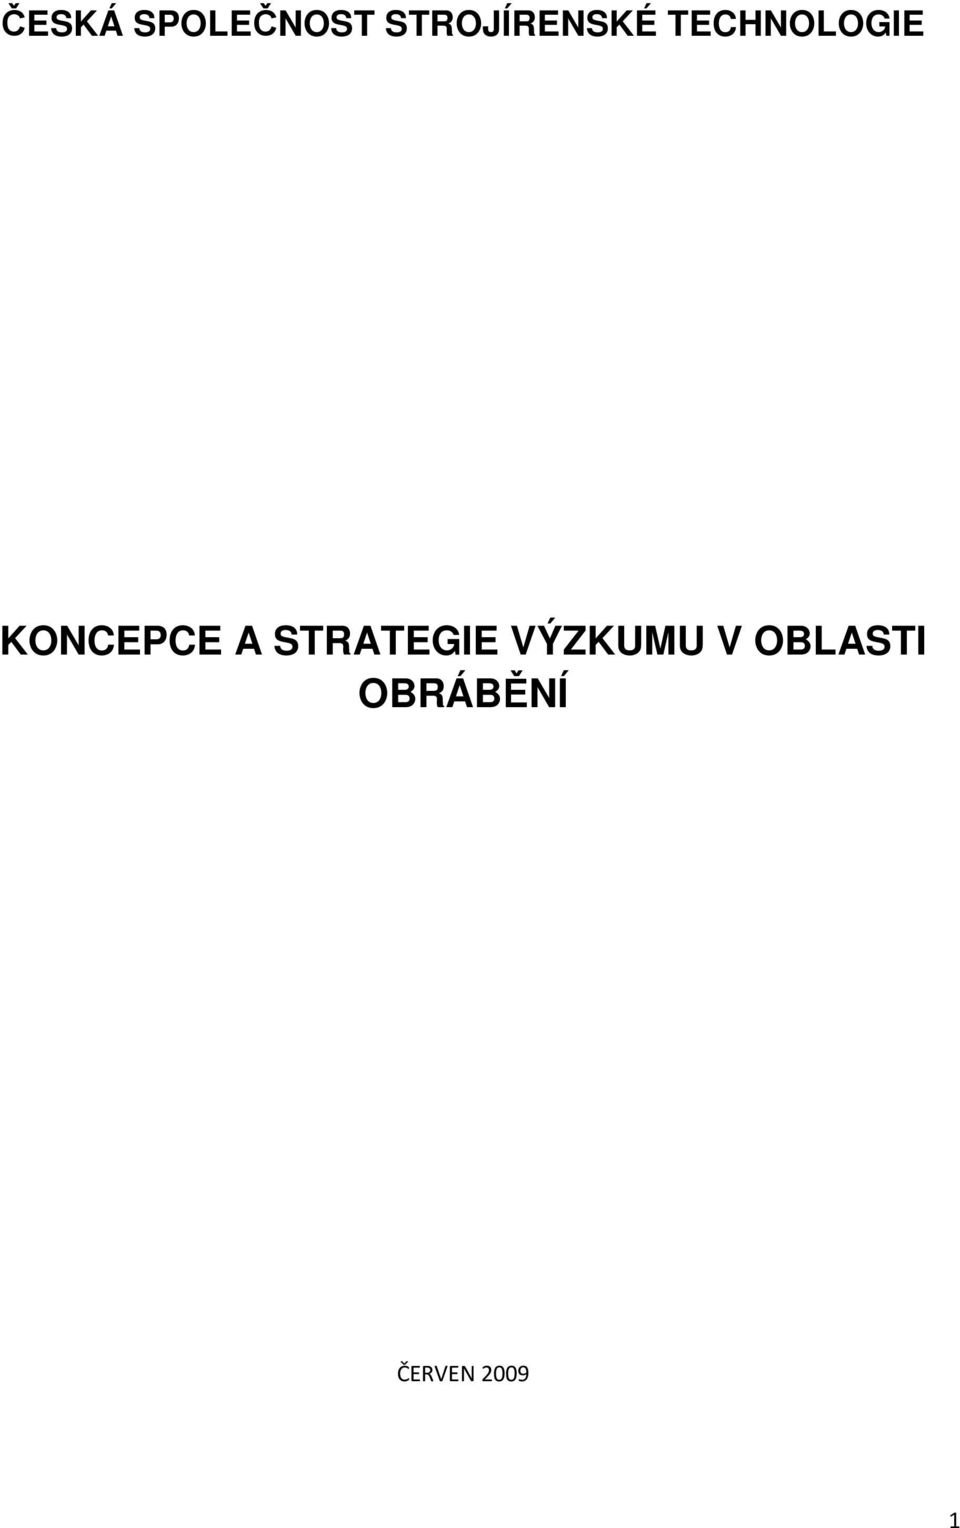 KONCEPCE A STRATEGIE